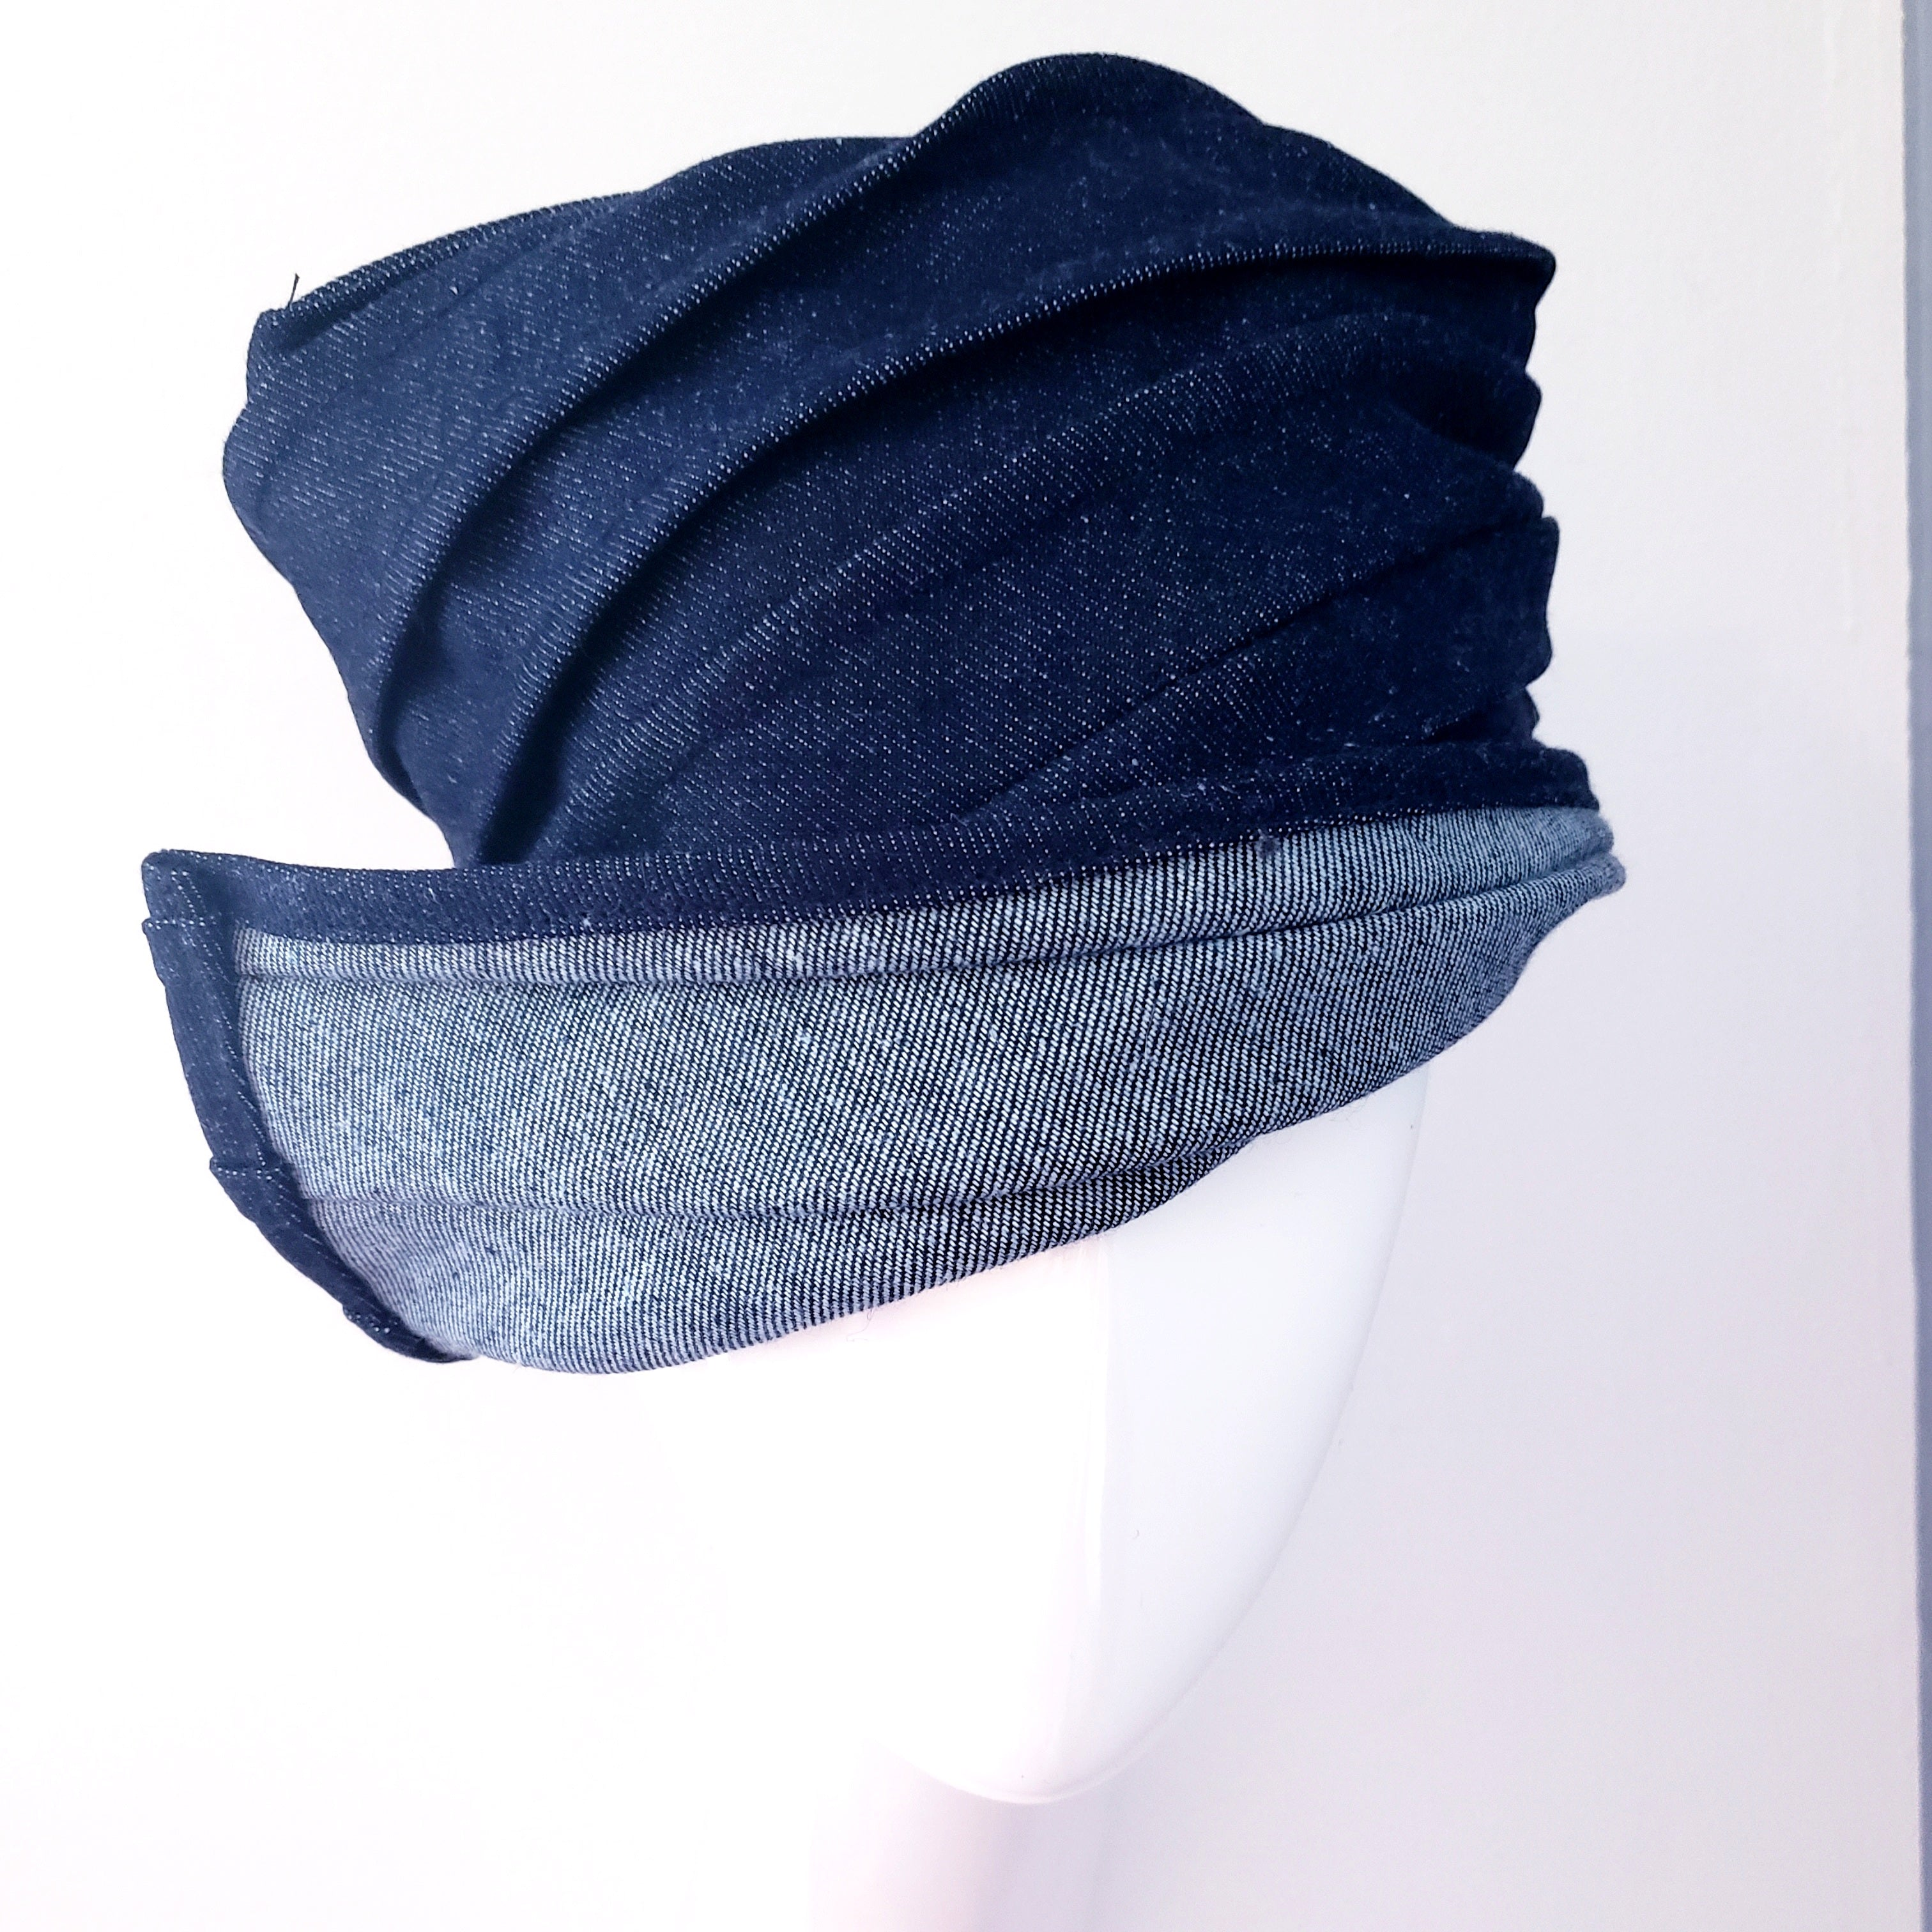 Denim noname RESTOCKED